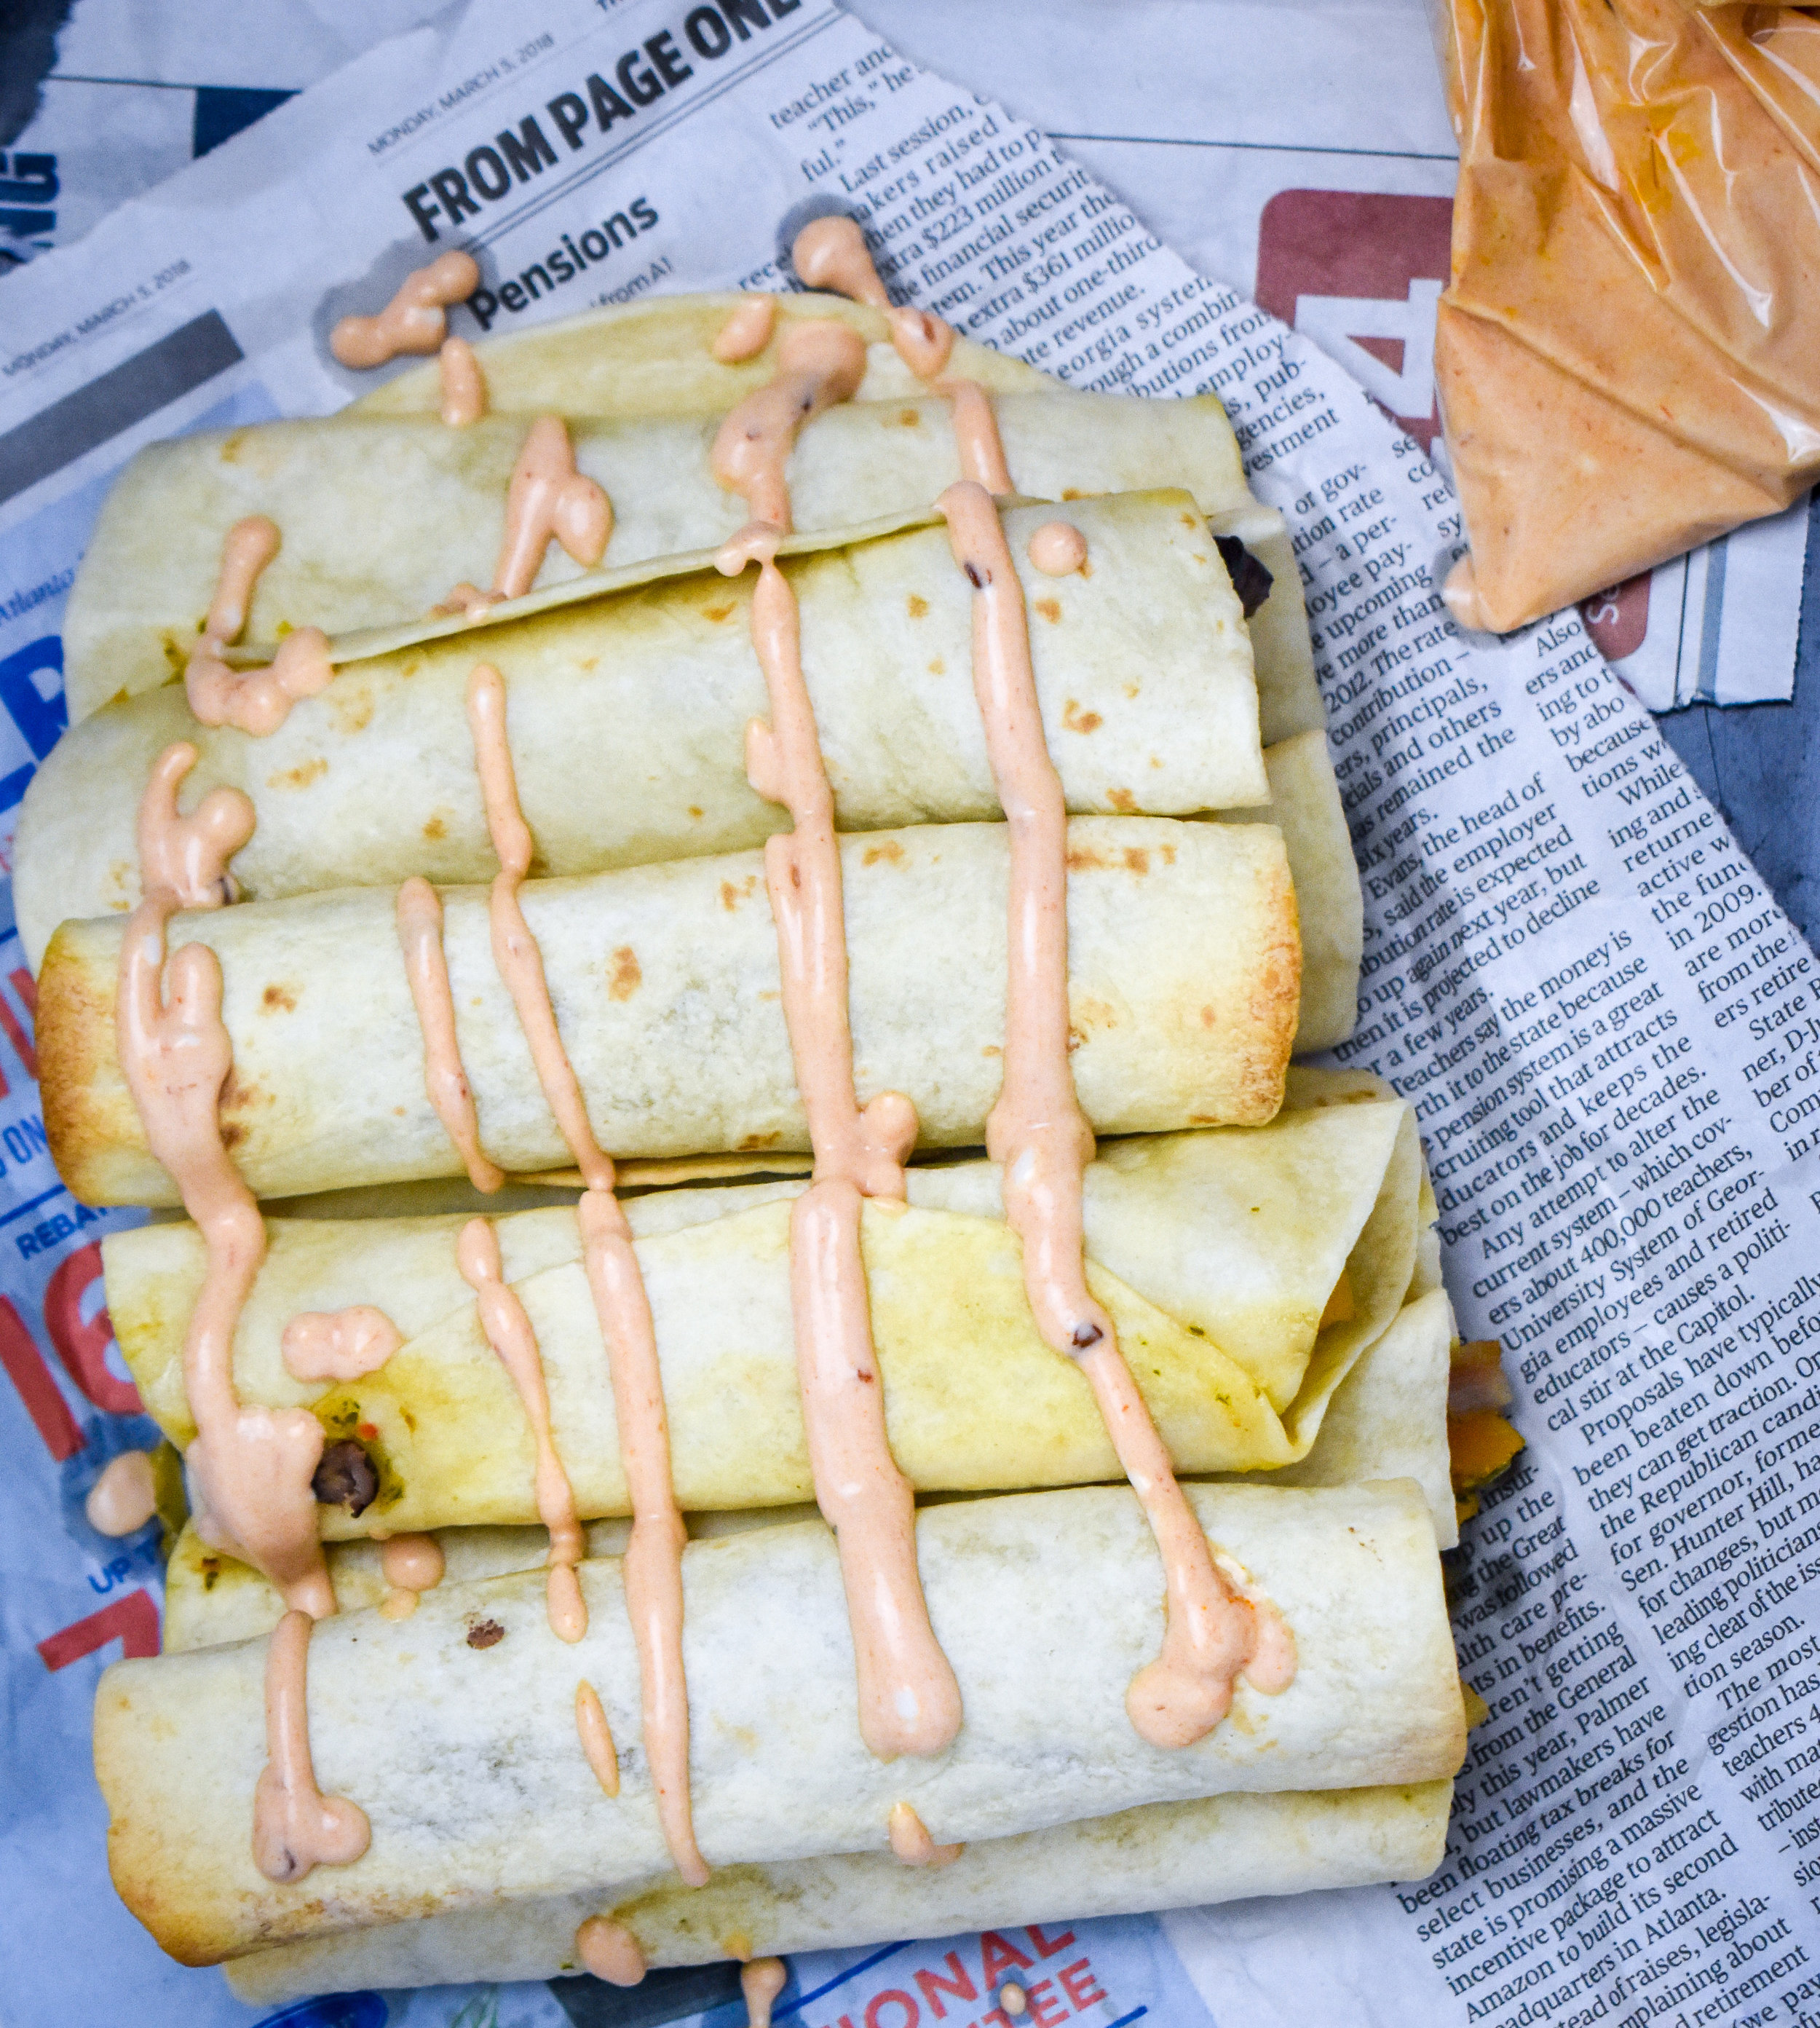 7. Once the taquitos are done baking, remove carefully with a spatula and line up on a plate. You can use the aioli as a dipping sauce or you can drizzle it on. To do this, snip off a corner of a ziploc bag filled with the aioli and squeeze on the aioli.